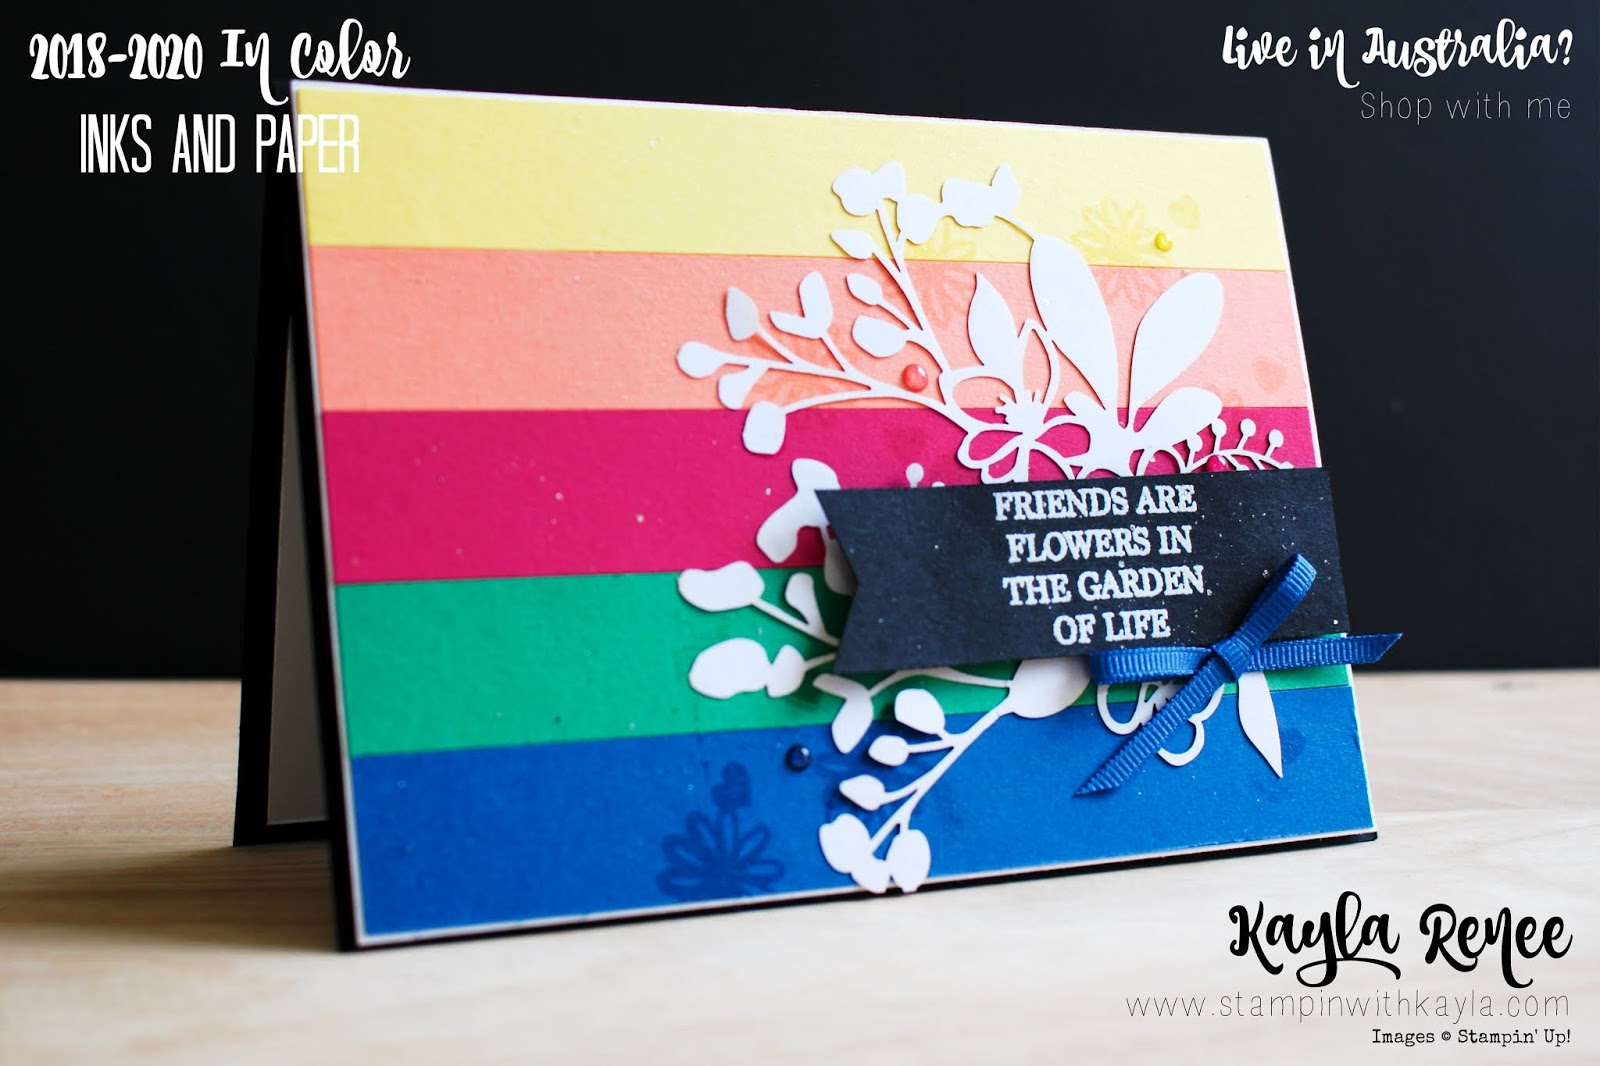 2018-2020 In Colors ~ Friendship Card